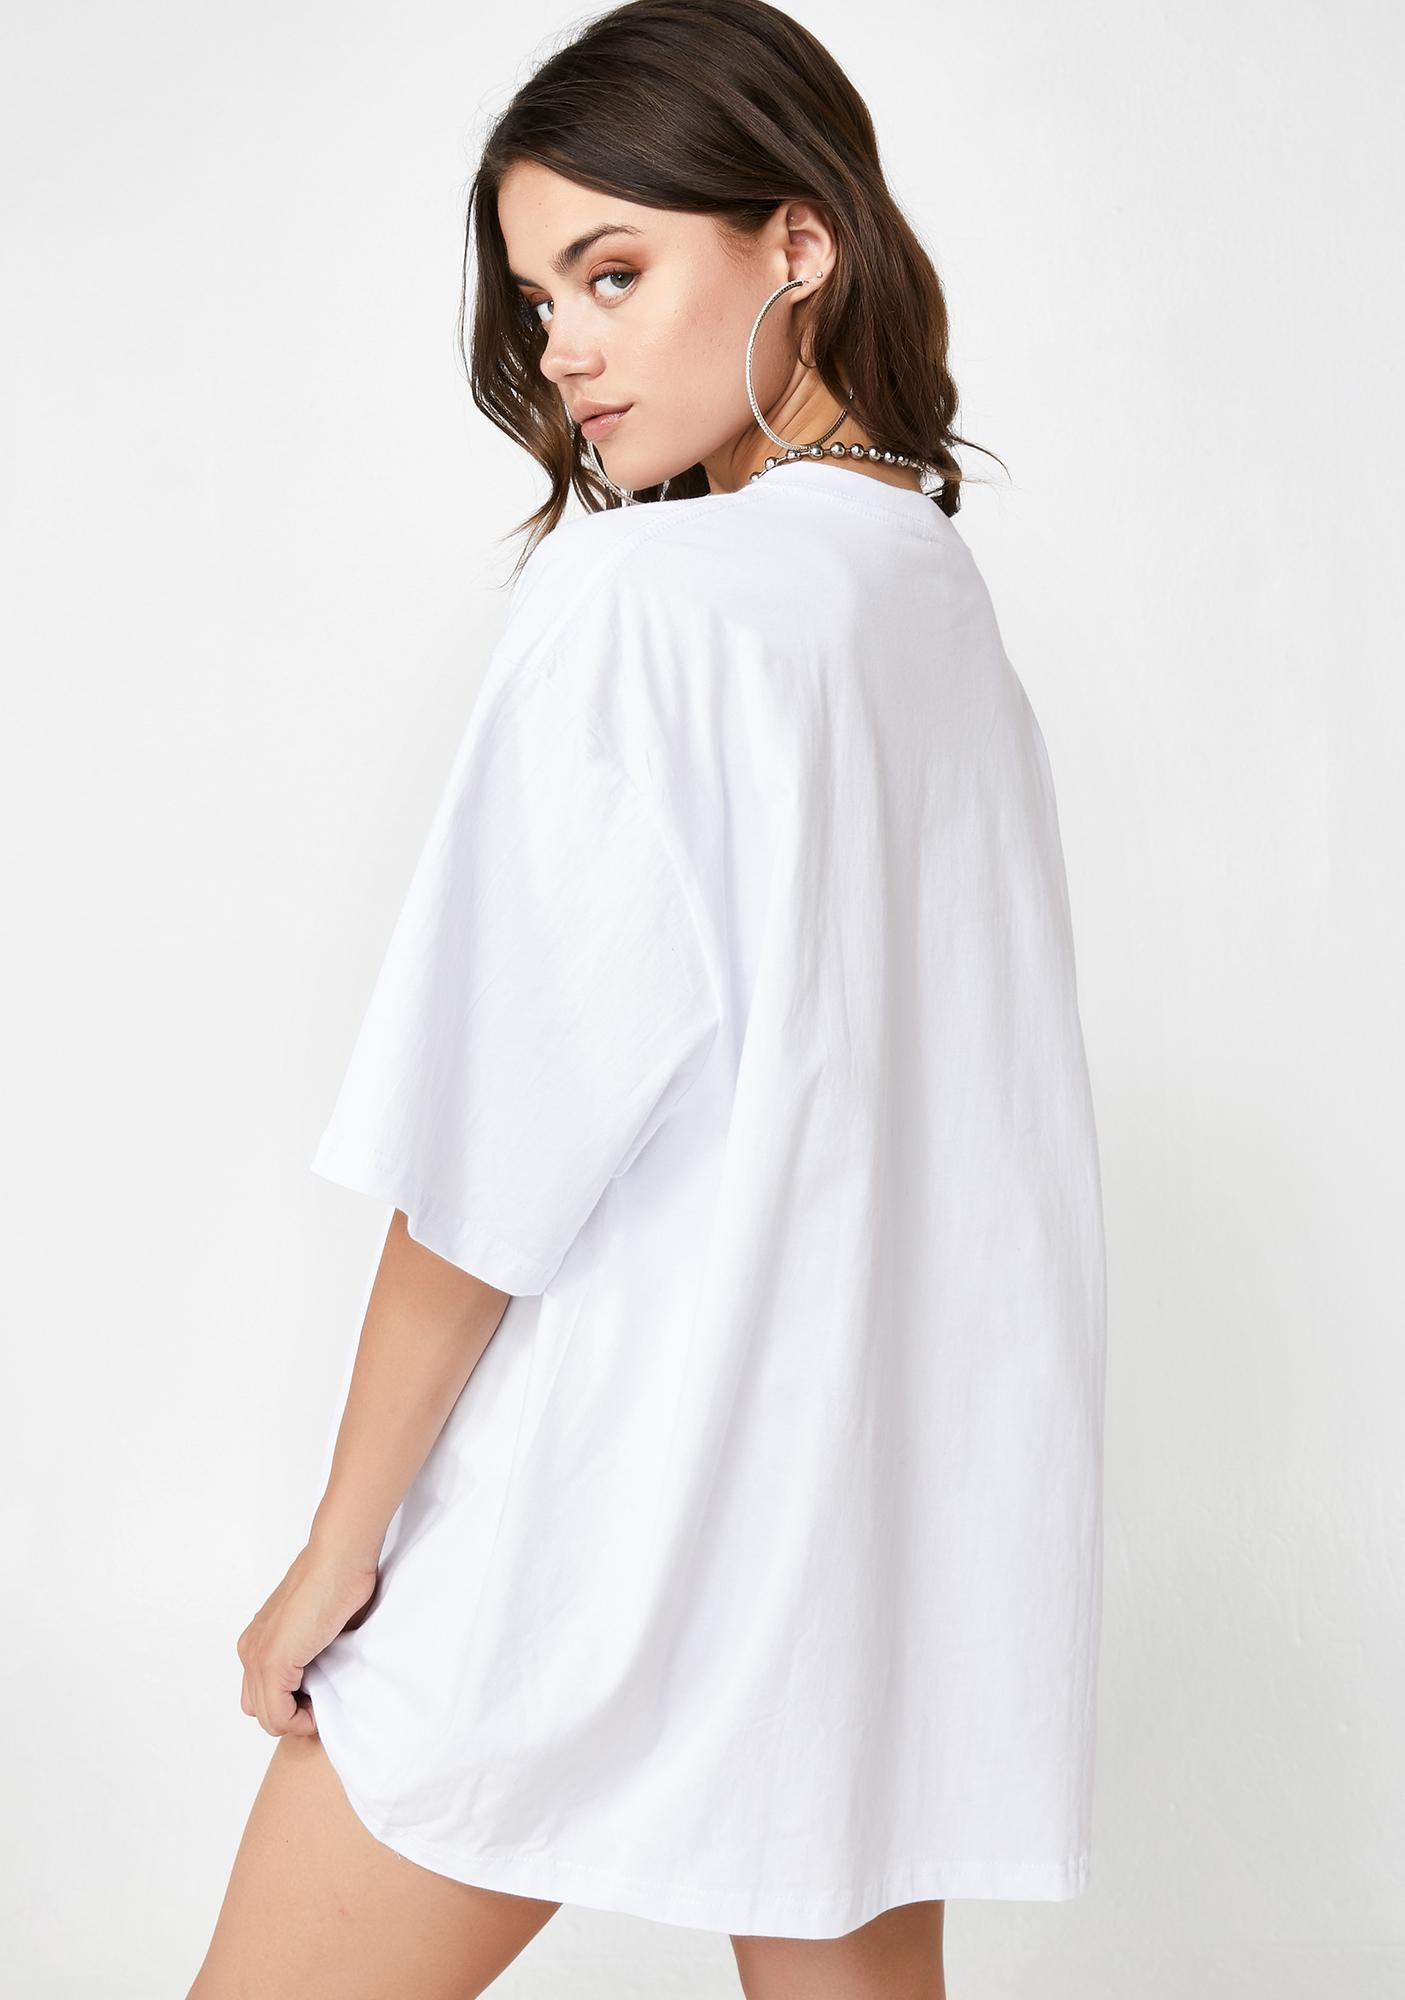 MaryJaneNite Mood Oversized Tee